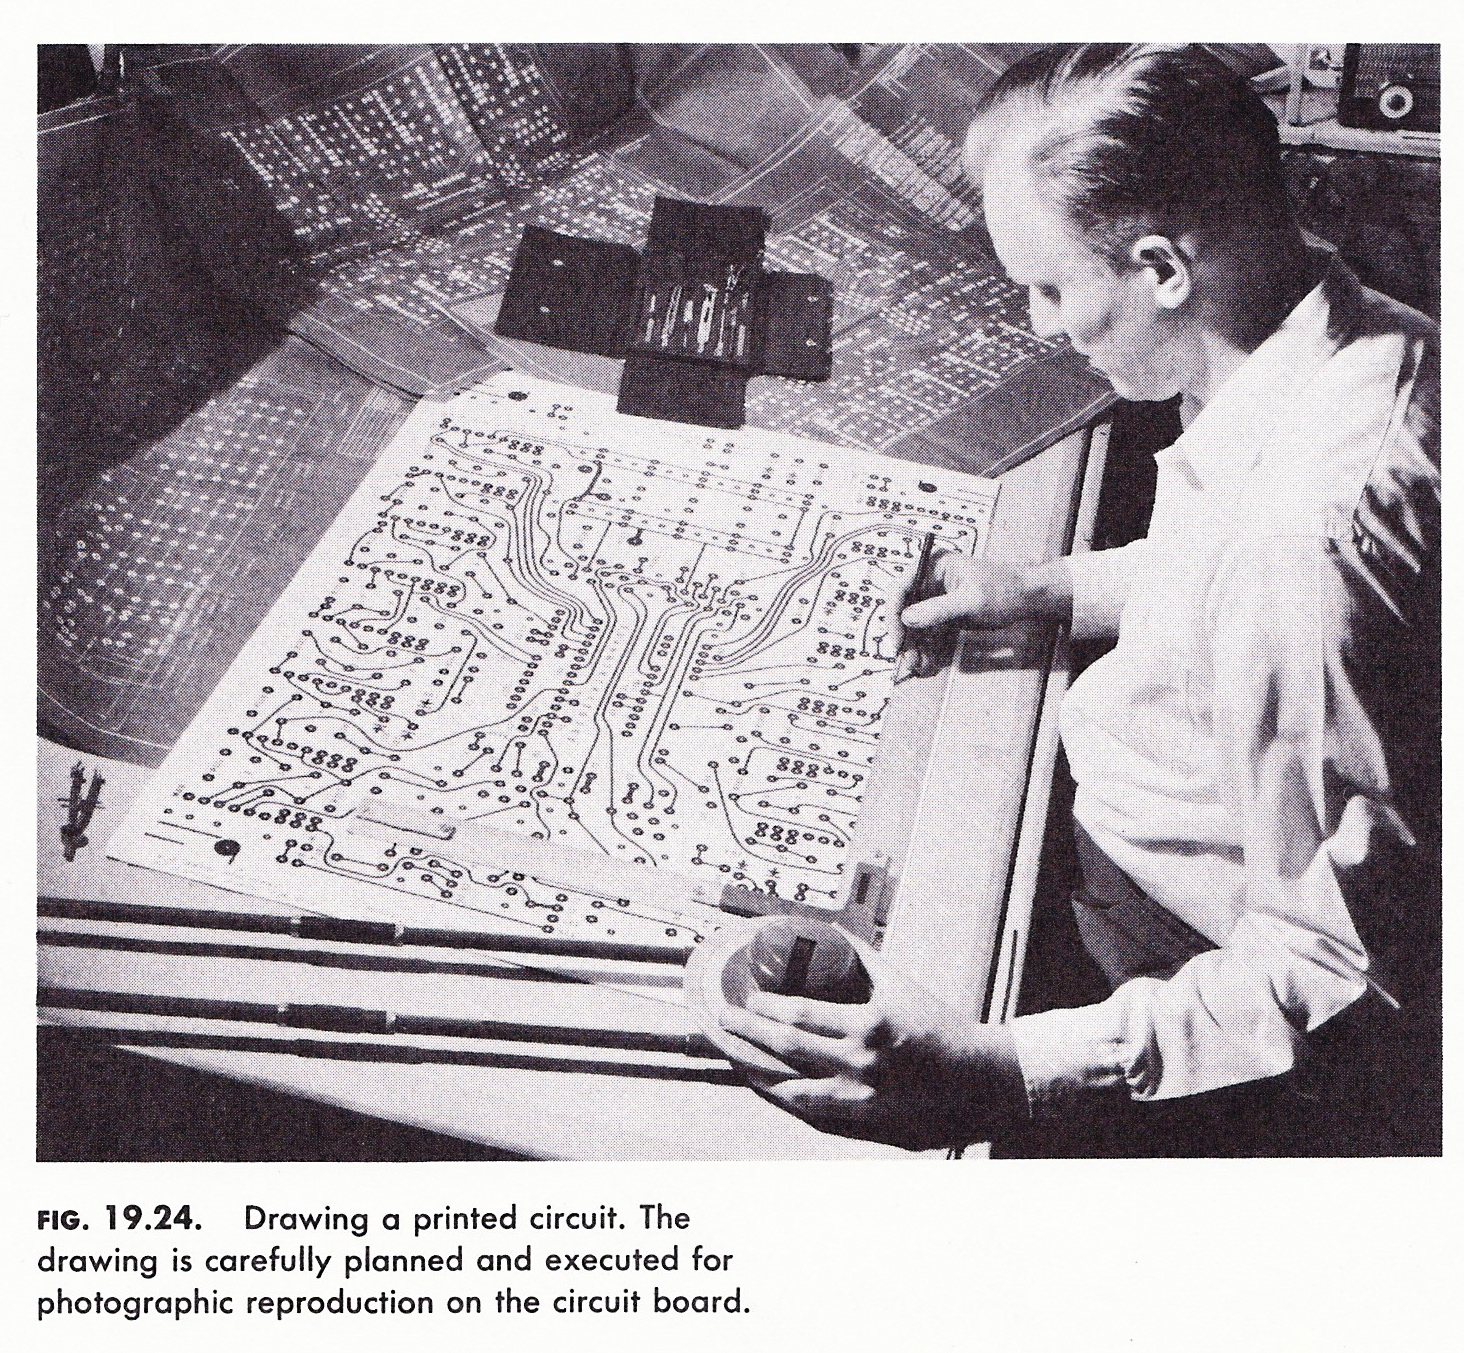 Pcb Evil Mad Scientist Laboratories Printed Circuit Board Designing How Boards Are Designed 1960 Edition